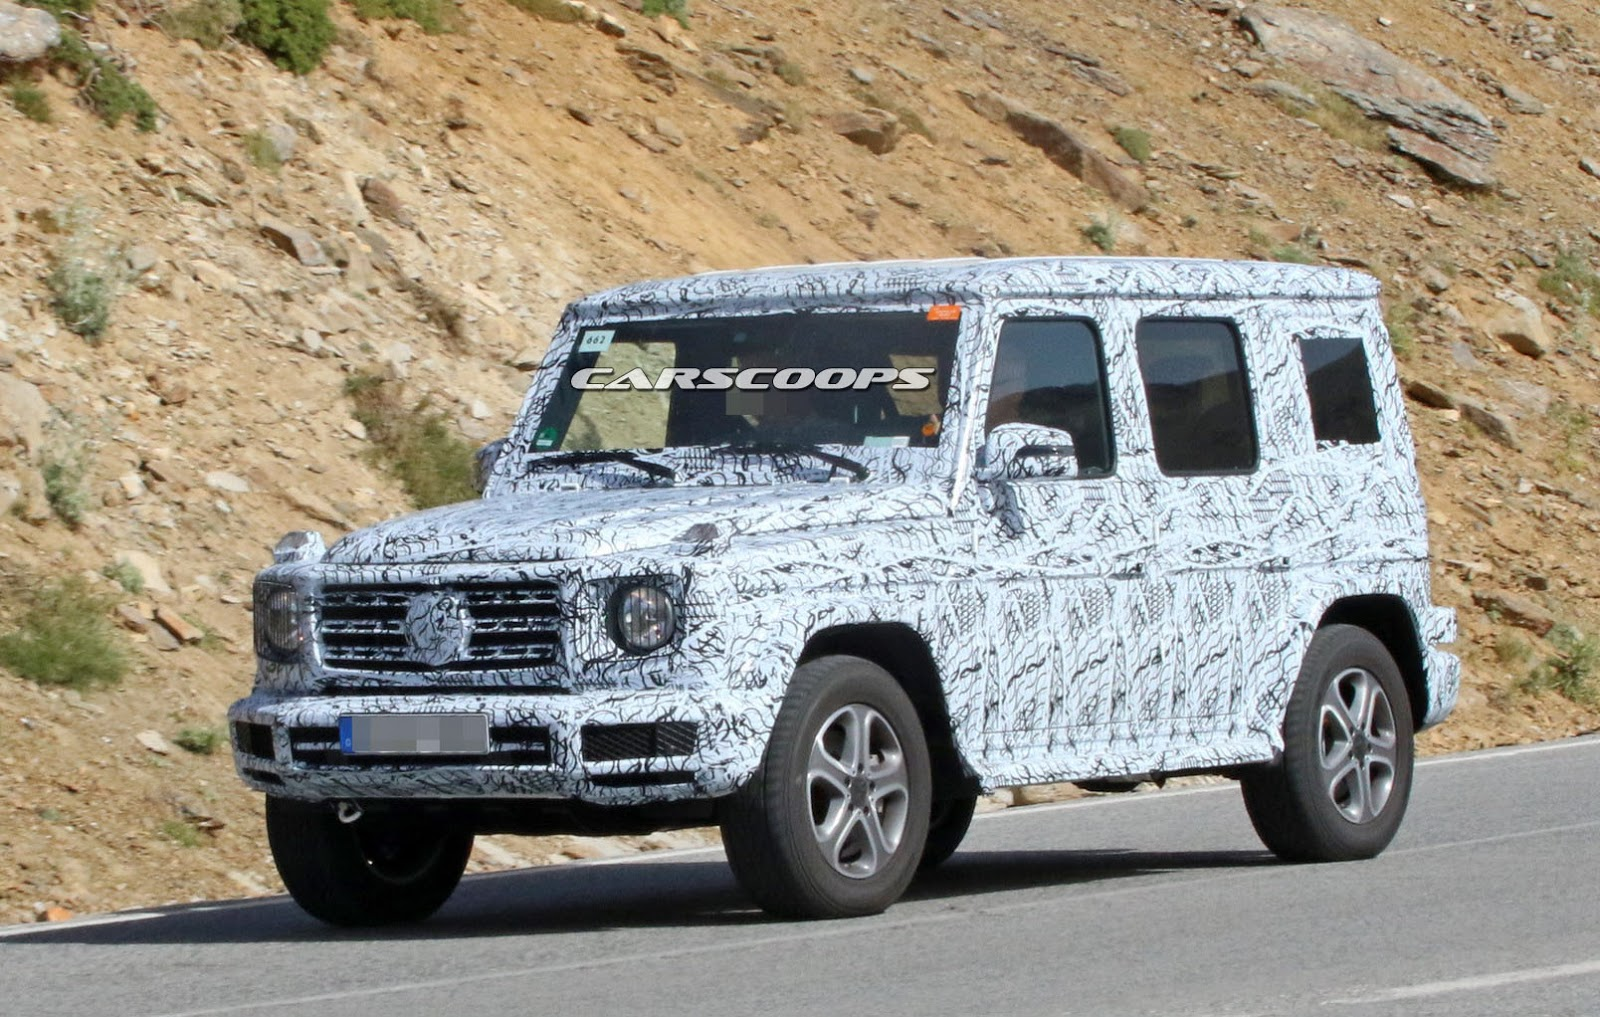 new mercedes g-class will share only one exterior part from